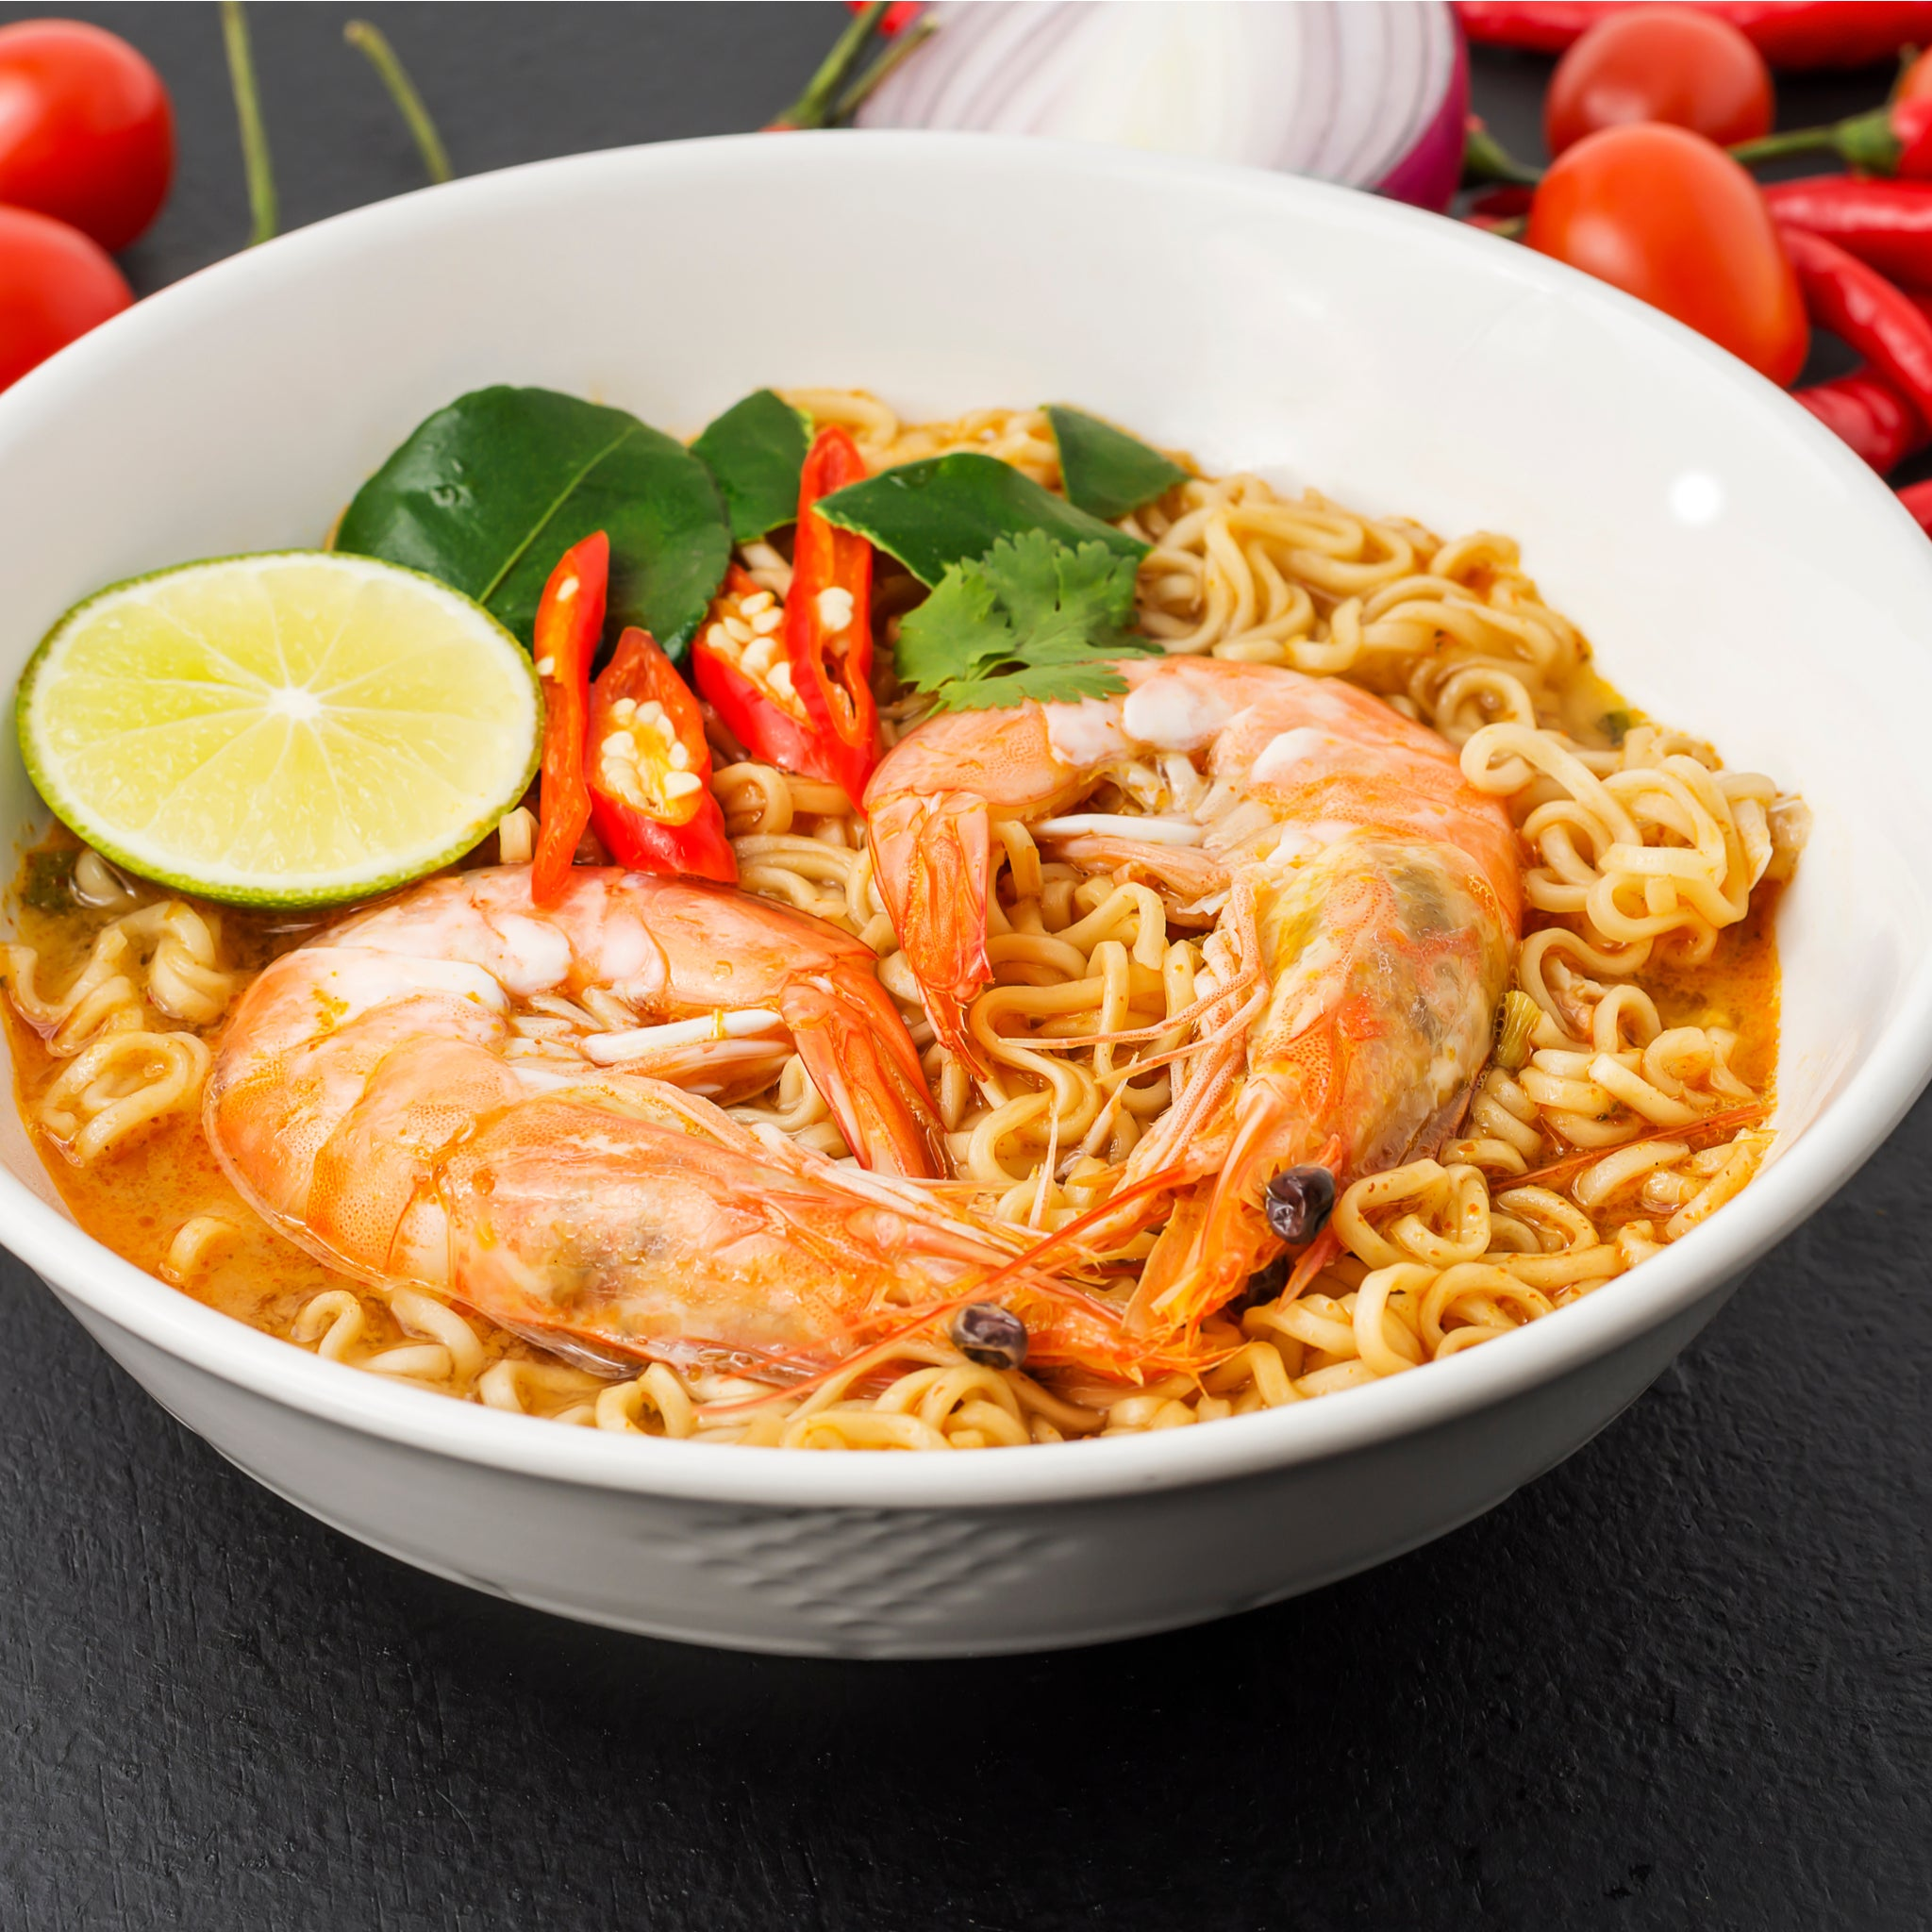 Korean udon hot and spicy instant noodles (90g) by Mama